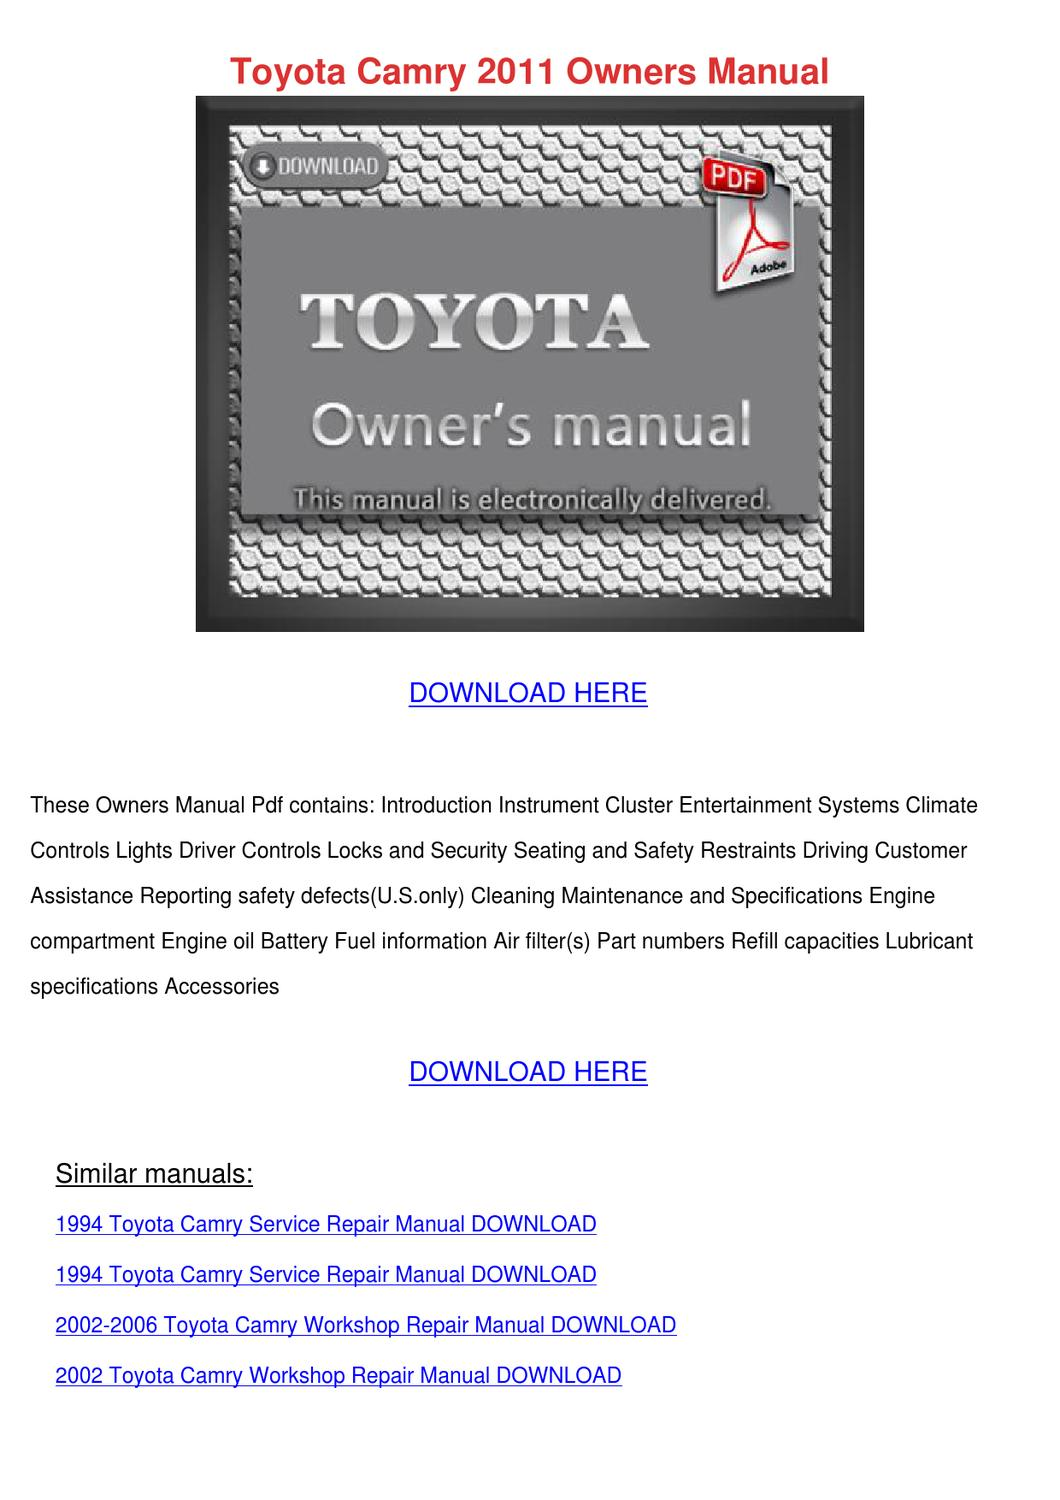 toyota camry 2011 owners manual by sharronrivard issuu. Black Bedroom Furniture Sets. Home Design Ideas